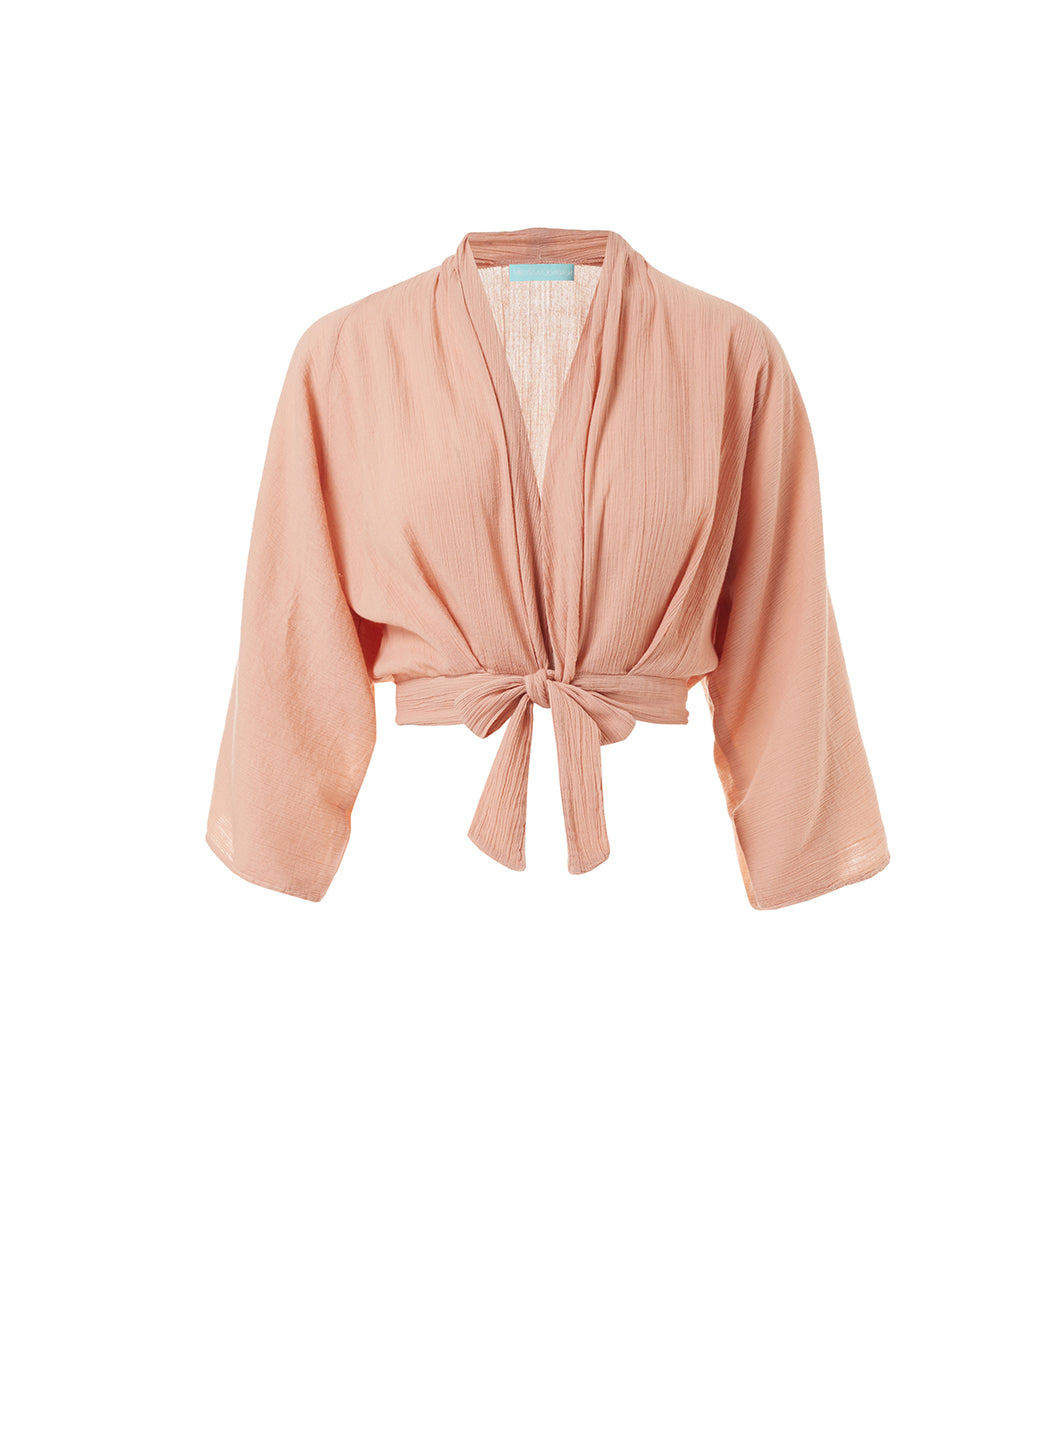 Mila Tan Tie-Front Cropped Blouse - Melissa Odabash Beachwear